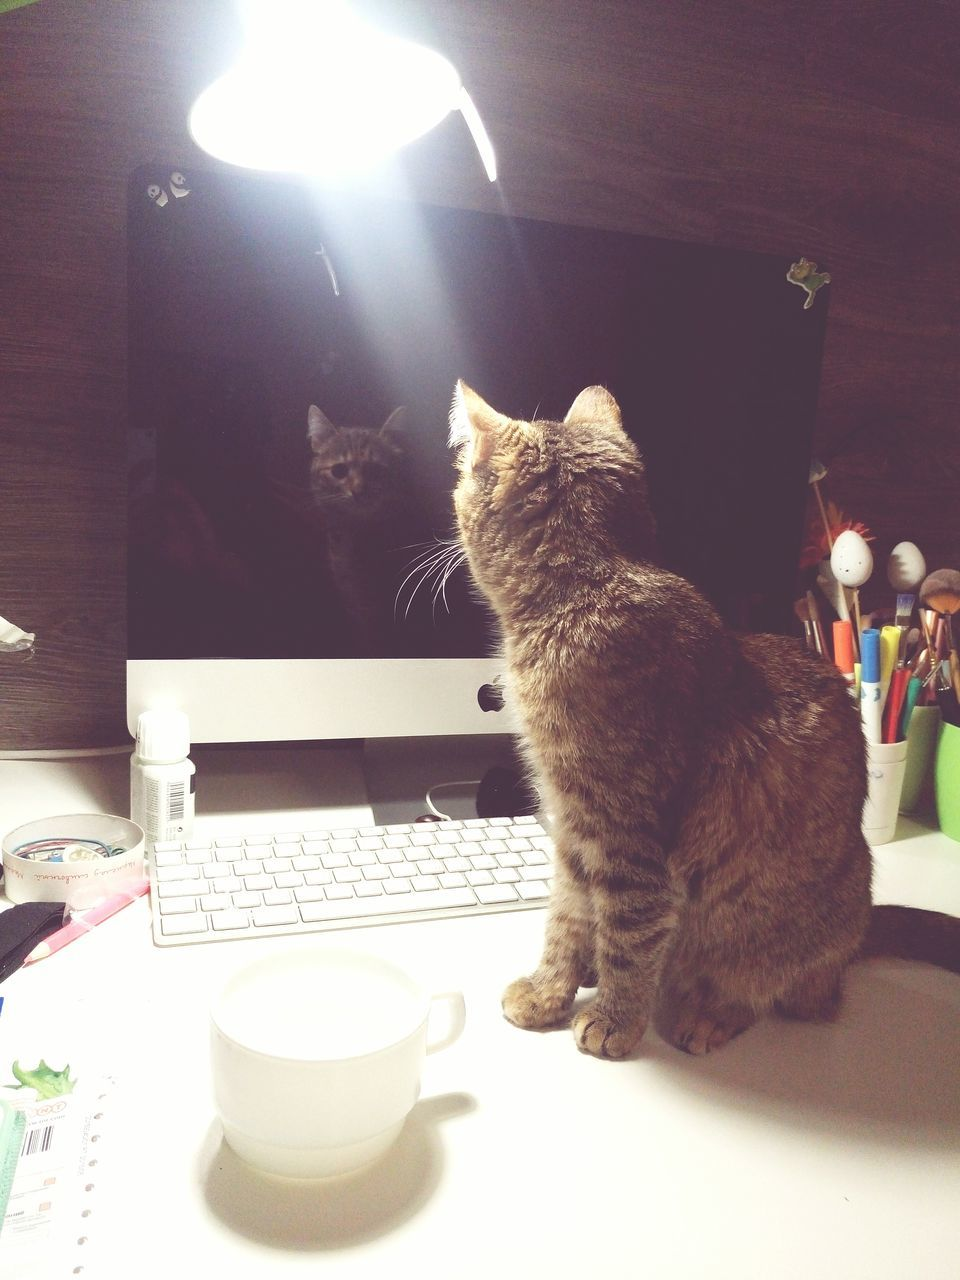 domestic cat, pets, domestic animals, animal themes, coffee cup, feline, one animal, mammal, cup, drink, table, cat, sitting, indoors, coffee - drink, food and drink, drinking, refreshment, tea - hot drink, plate, no people, illuminated, day